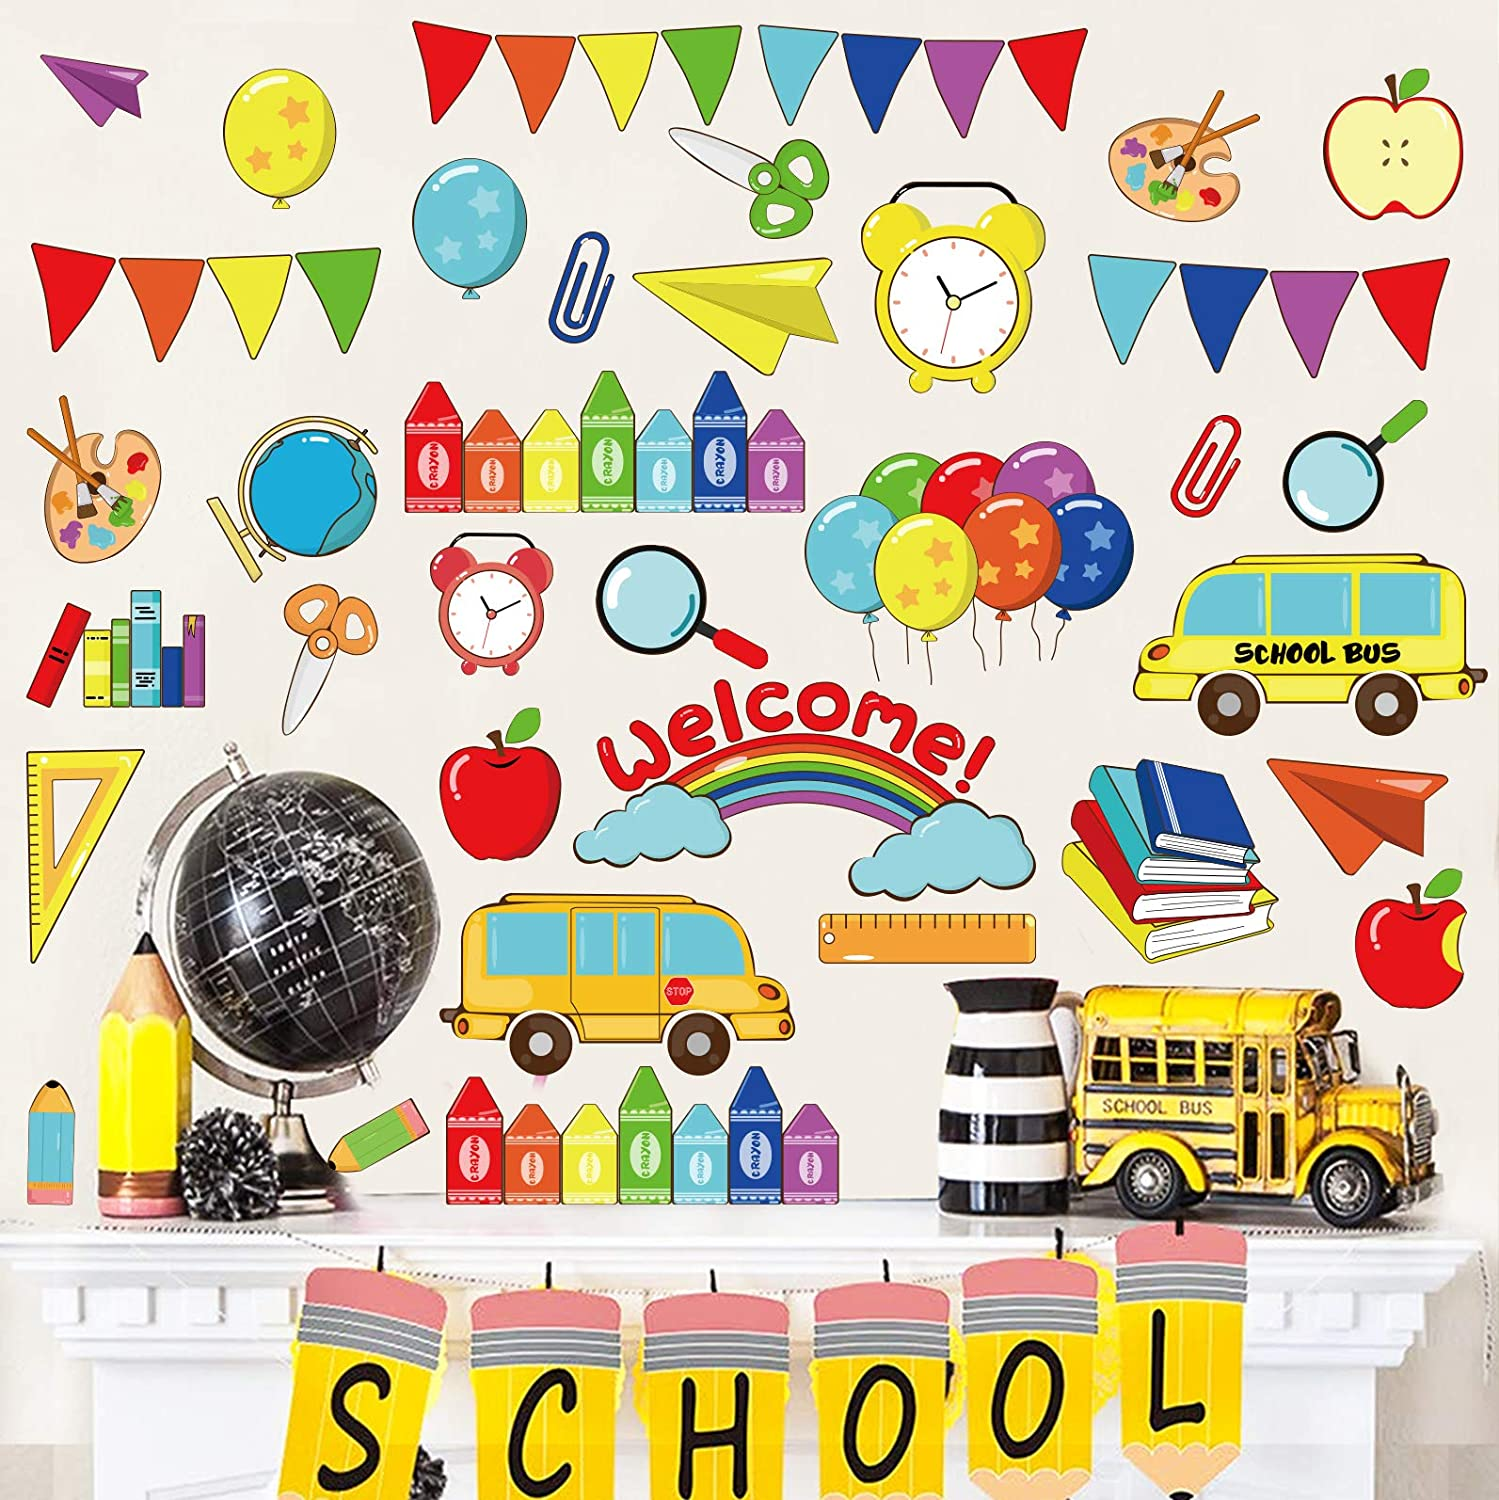 Ivenf First Day of School Stickers Wall Decorations, Extra Large Classroom School Home Party Supplies Decals, Window Bulletin Board Decor Gifts, 6 Sheet